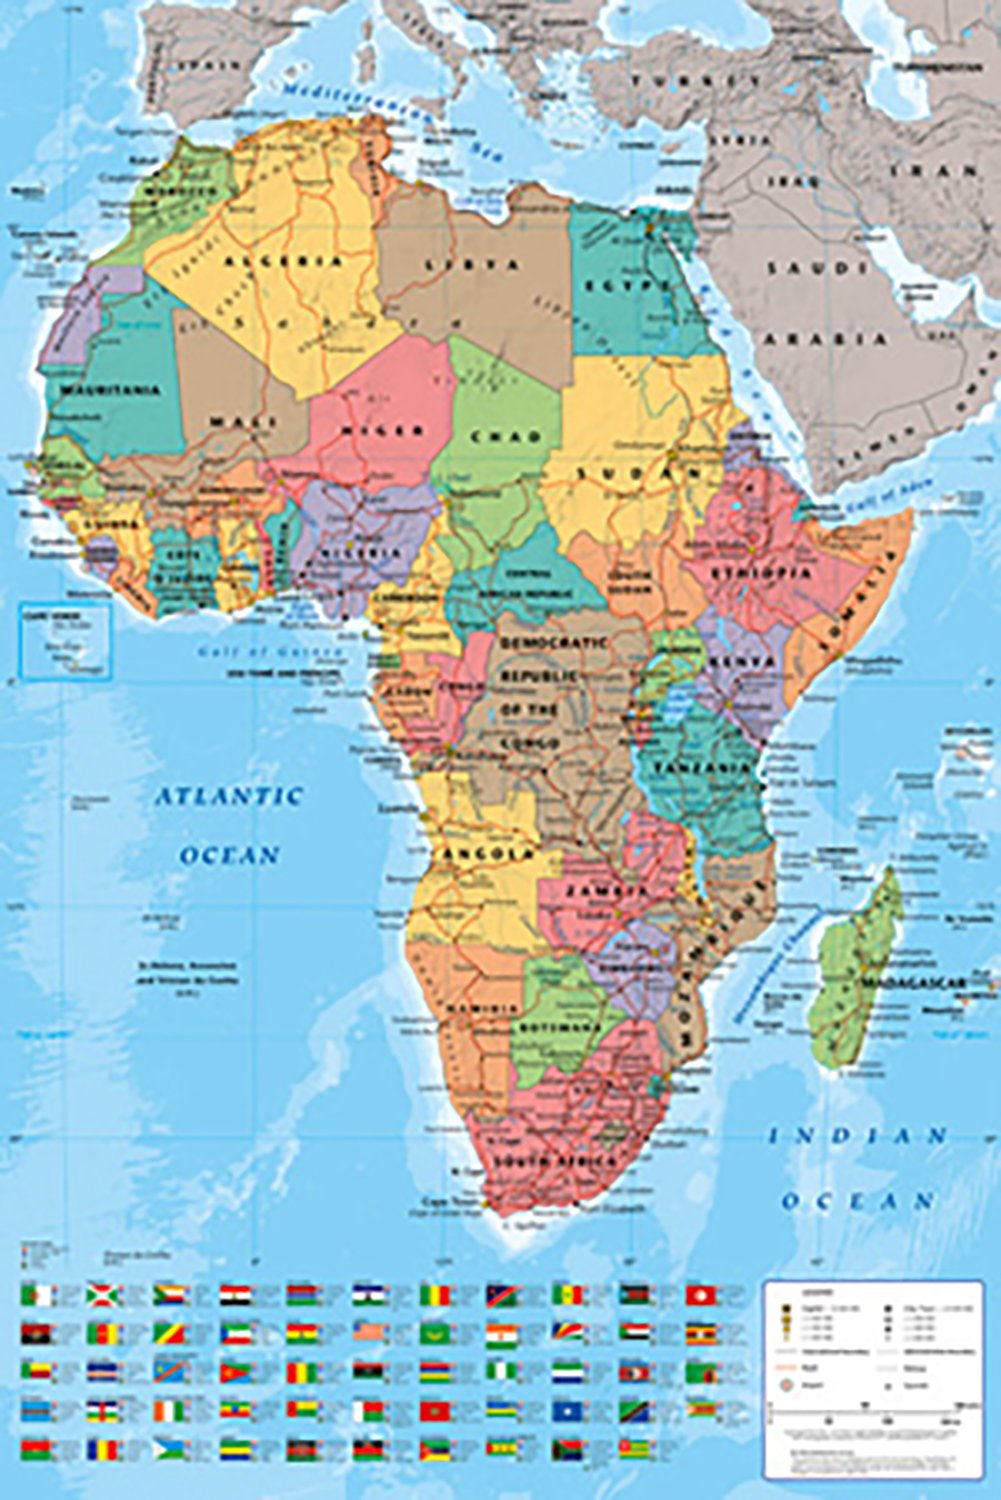 About the upside down map of the world sacredmargins amazoncom amazoncom poster service africa map poster inch by inch accurate world map poster gumiabroncs Choice Image